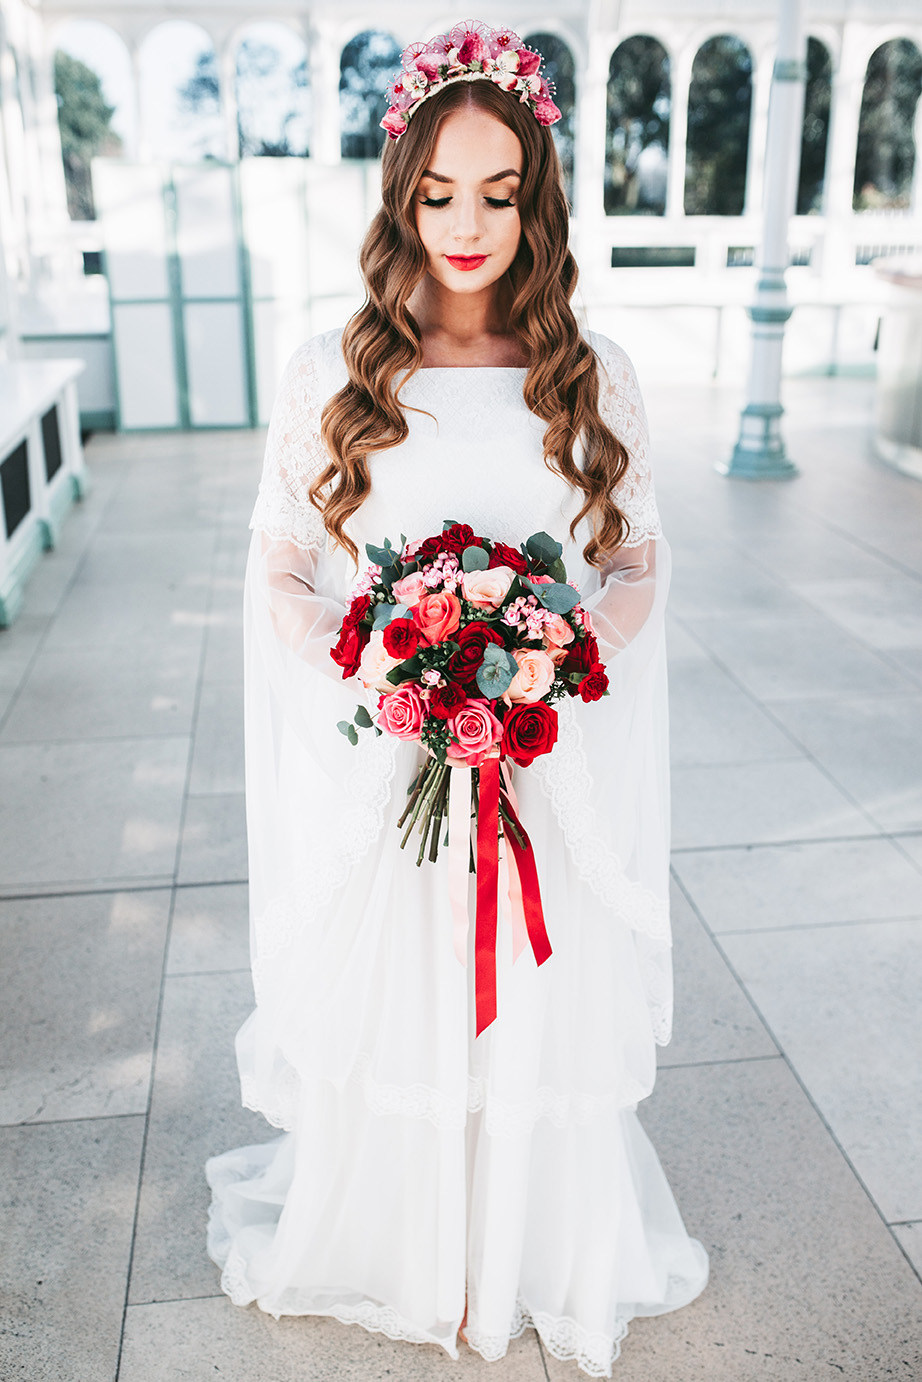 The second wedding dress was a lace one with a capelet, the makeup matched   a red lip and long lashes